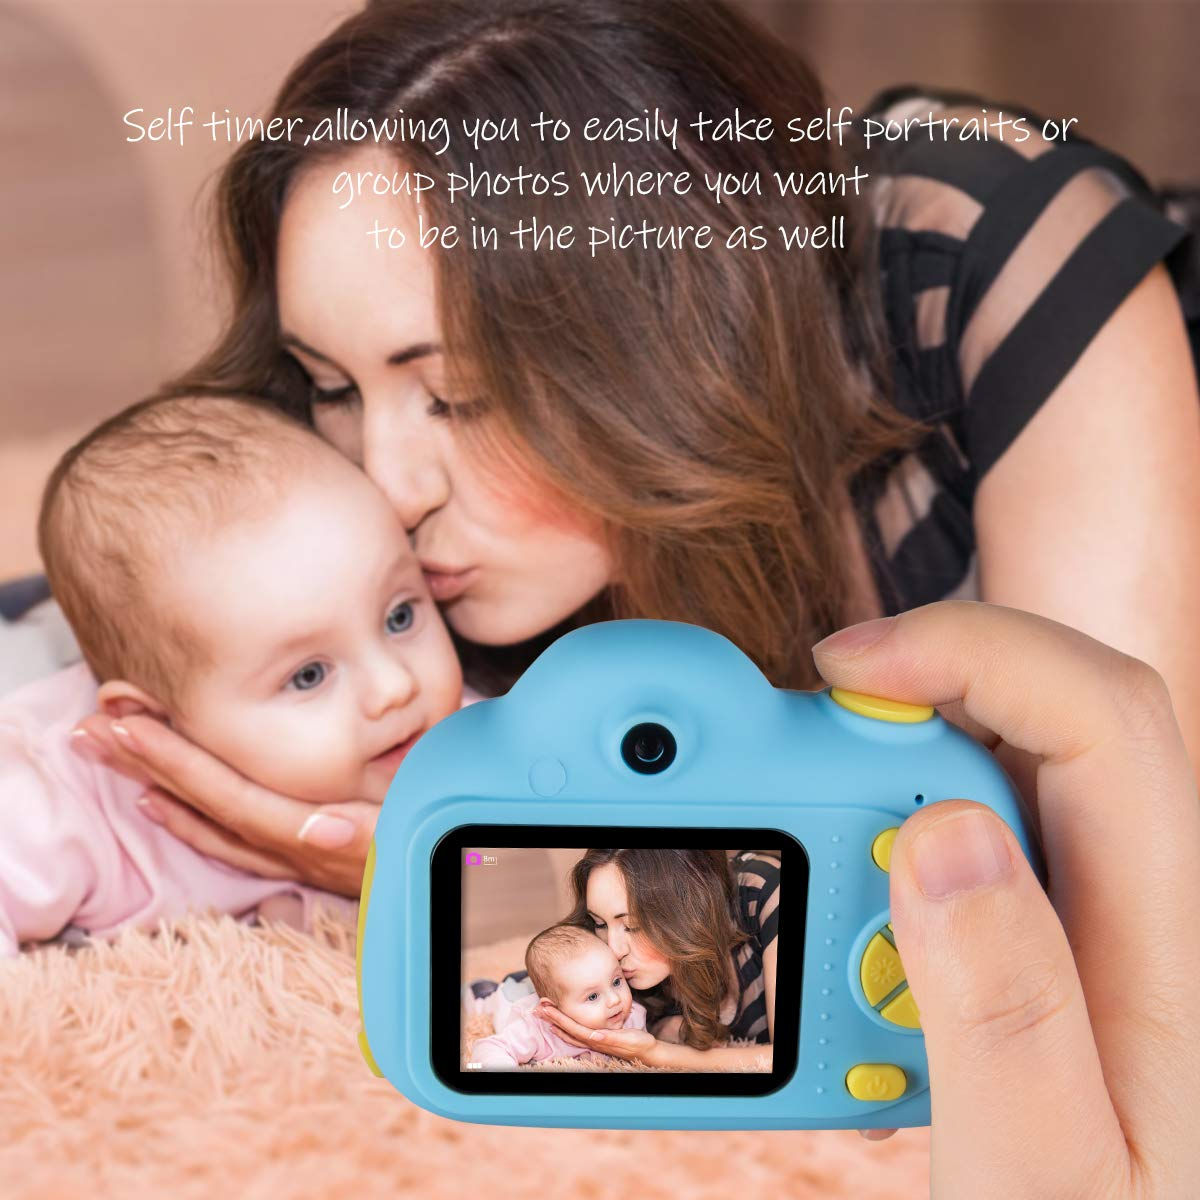 Kids Cameras Dual Selfie Digital Camera HD Video Recorder Action Camera Camcorder for 4-9 Year Old Kids Birthday Festival Gifts Toys for Children Boys Girls 2.0'' LCD Screen 4X Digital Zoom (Blue) by Tyhbelle (Image #4)